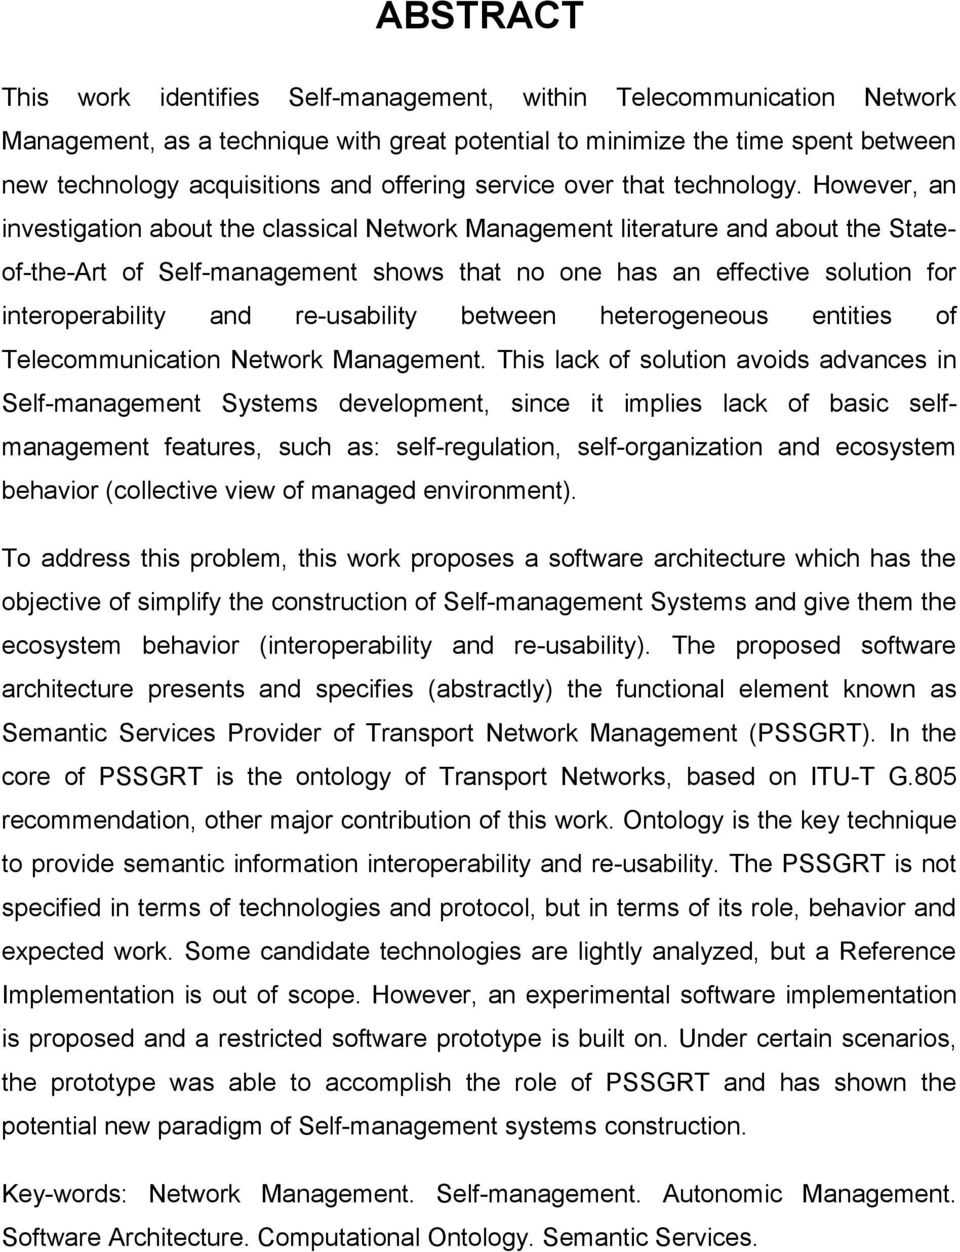 However, an investigation about the classical Network Management literature and about the Stateof-the-Art of Self-management shows that no one has an effective solution for interoperability and